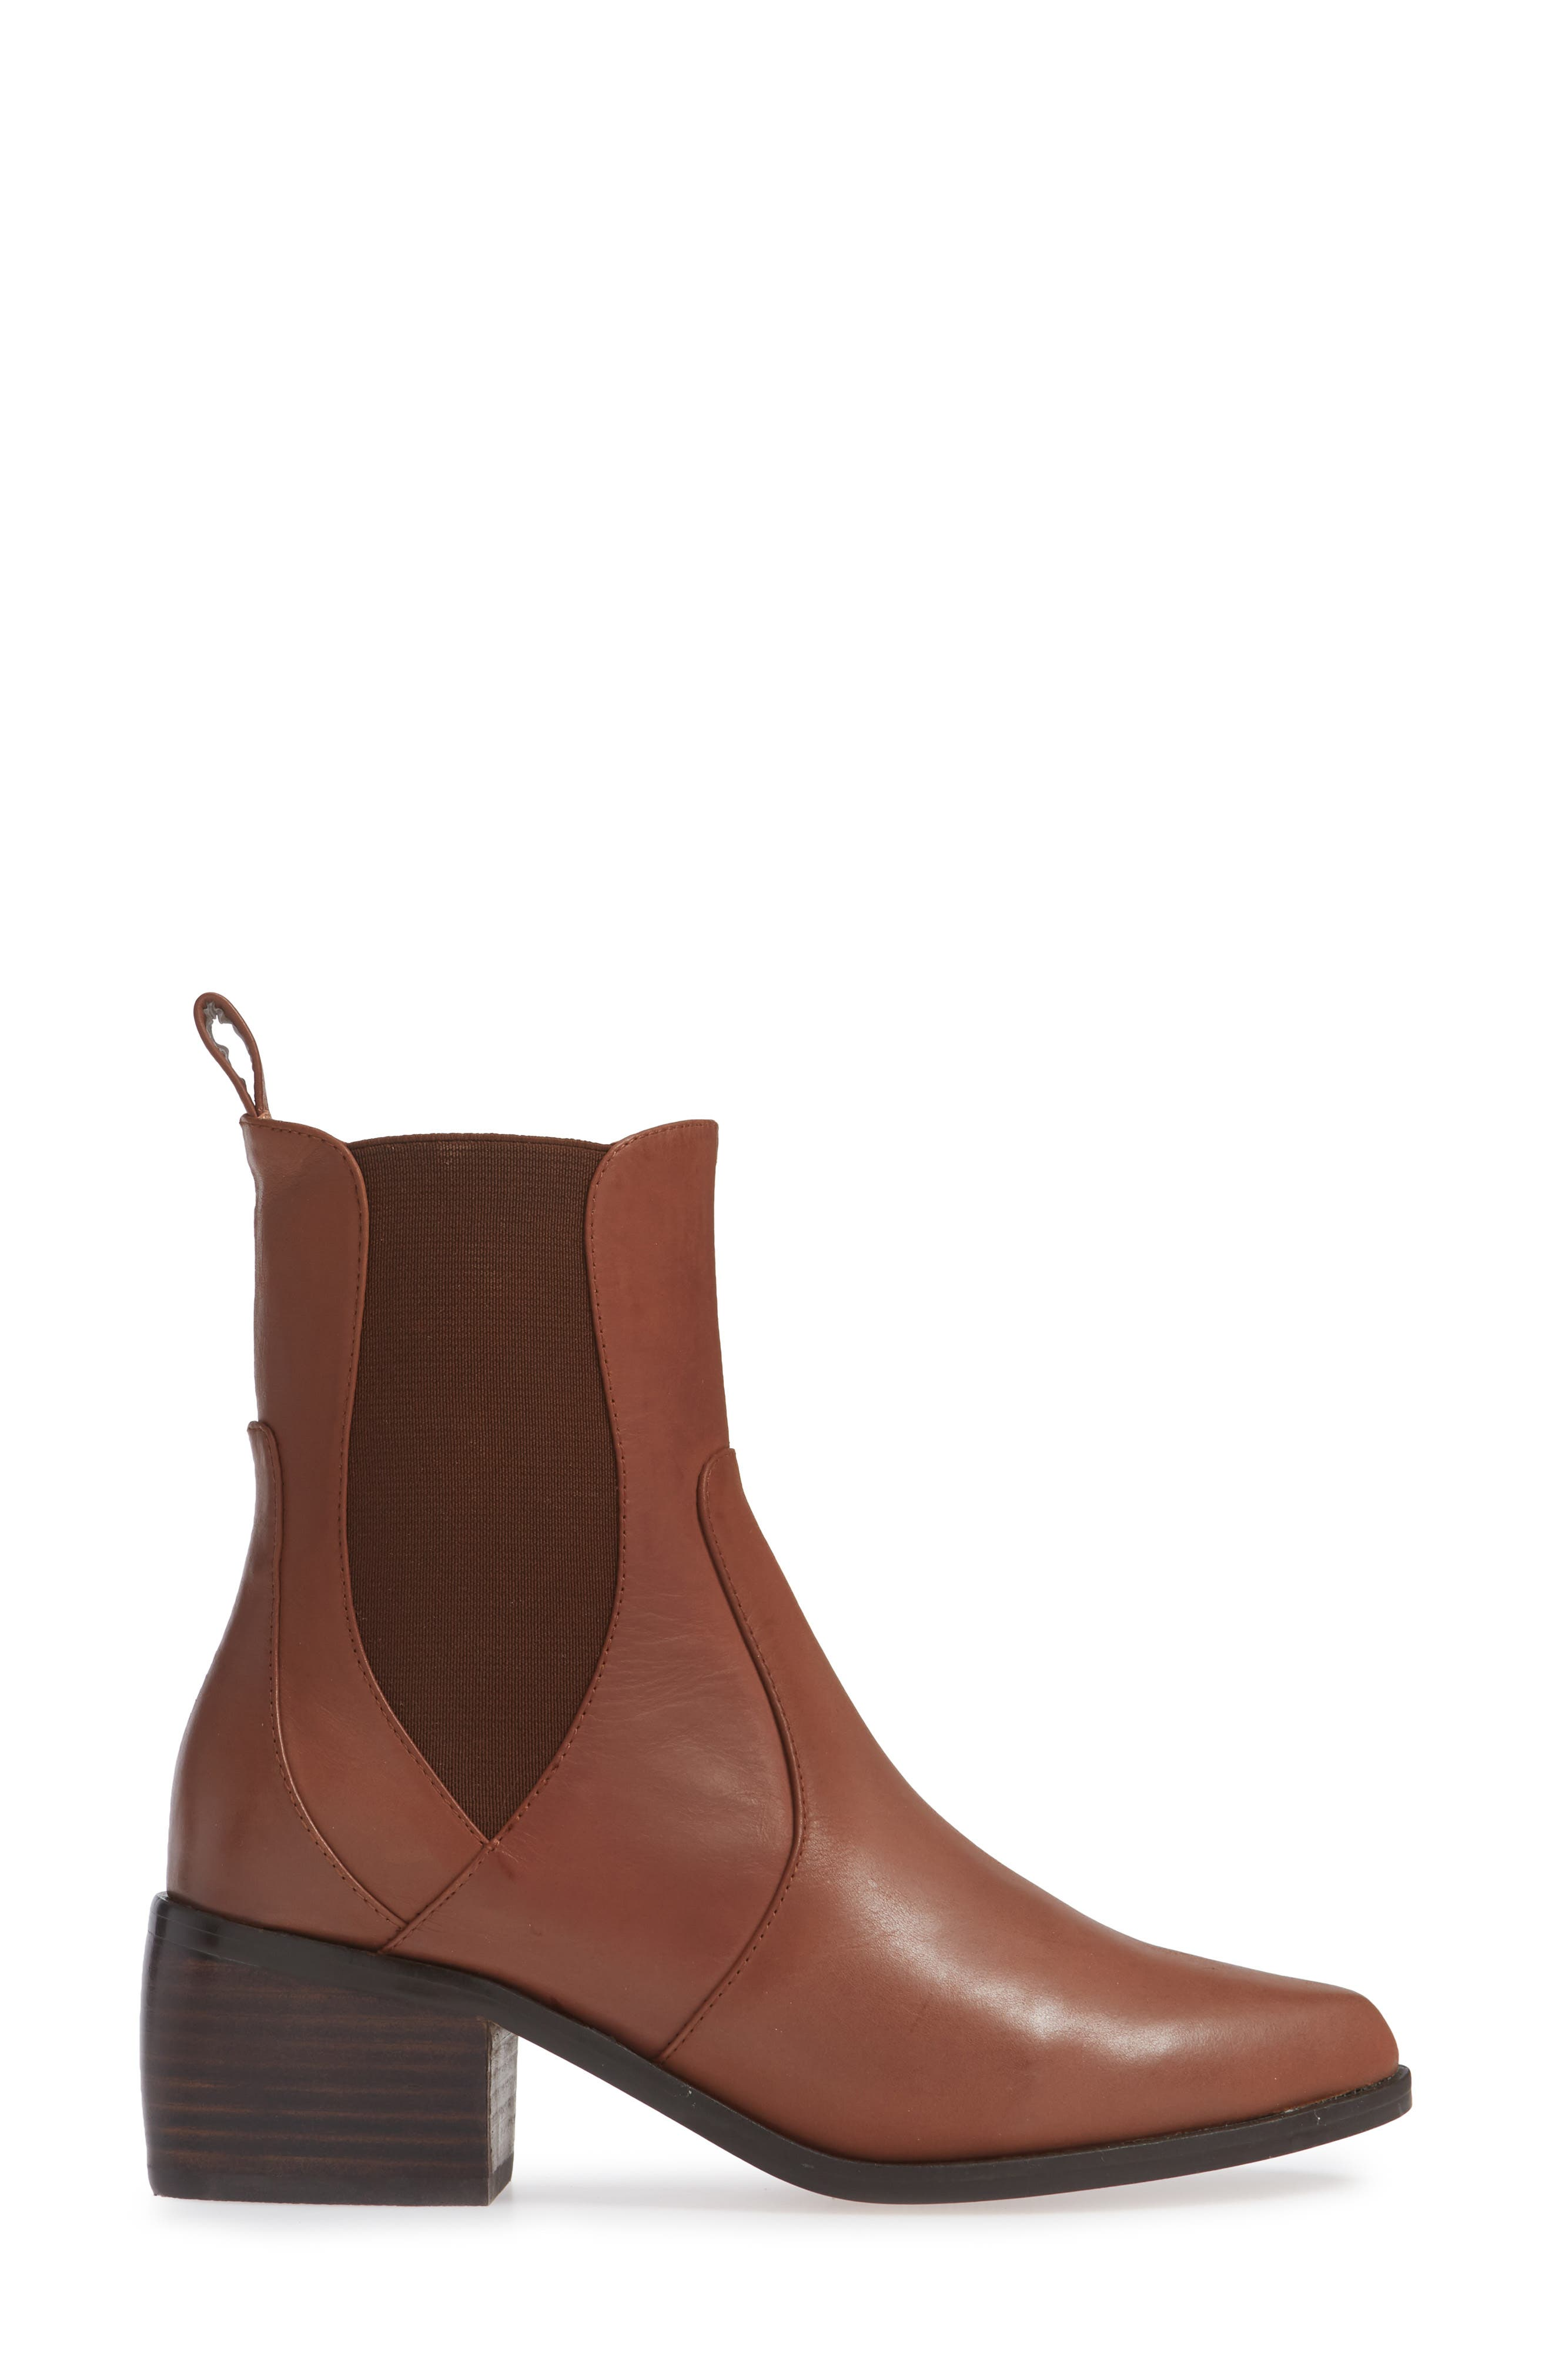 Genesis Bootie,                             Alternate thumbnail 3, color,                             TAN LEATHER